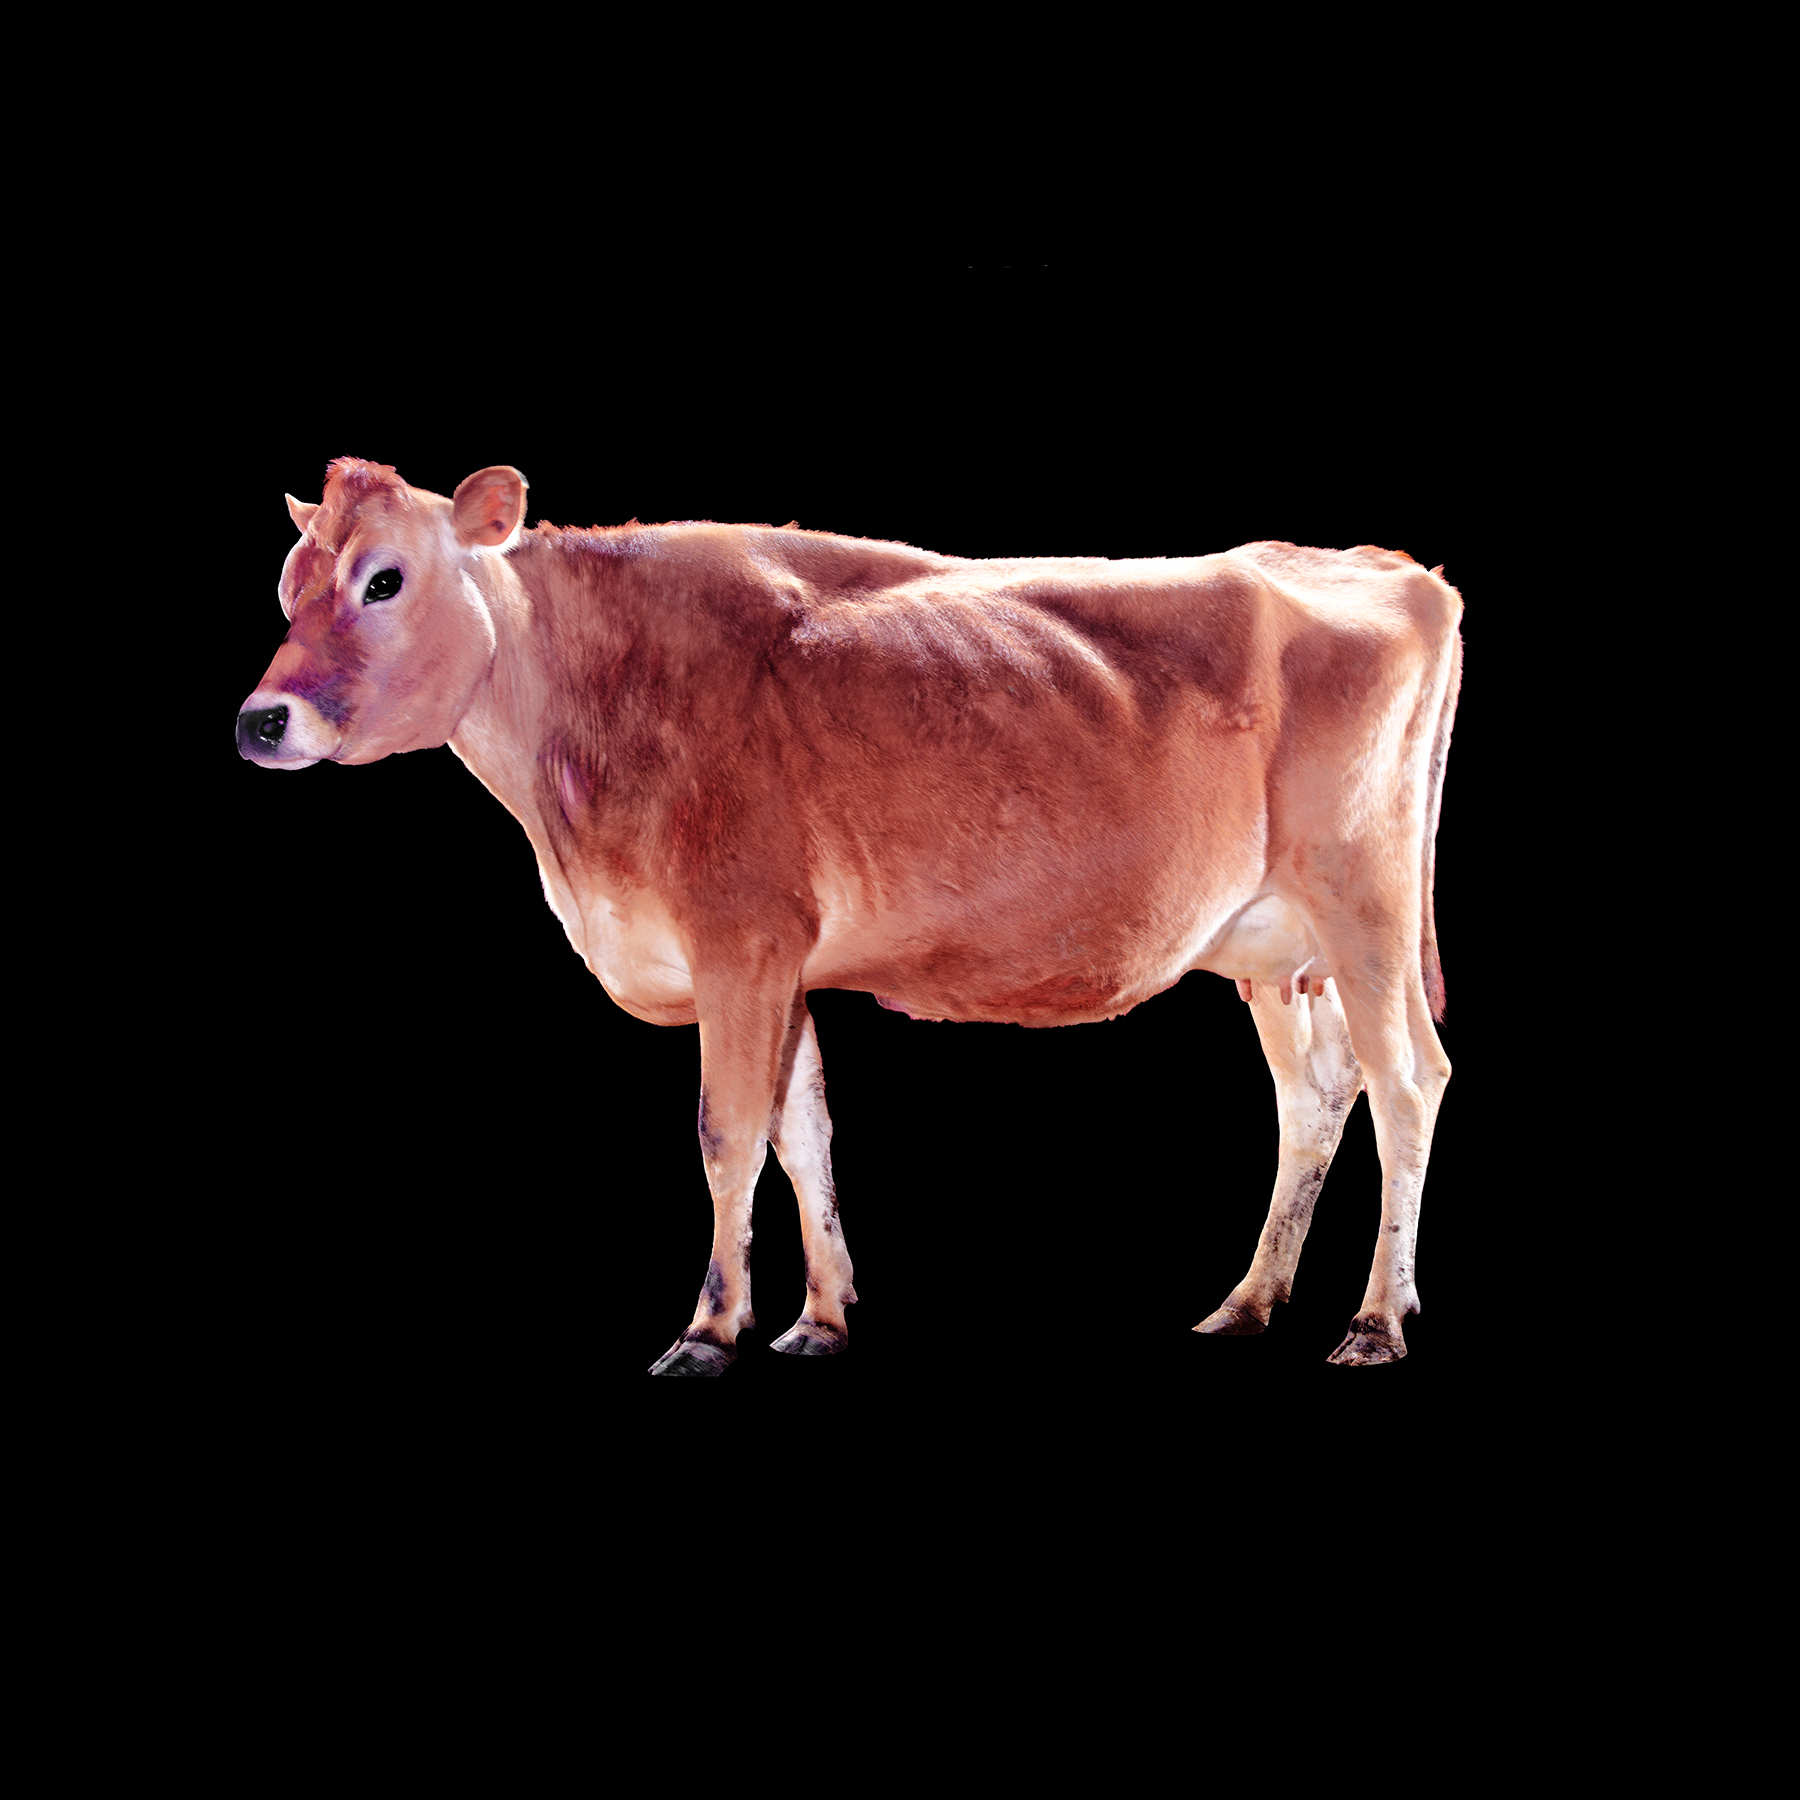 COW-JERSEY-GOLDEN-STONEWALL-DAIRY-FARM-©-JONATHAN-R.-BECKERMAN-PHOTOGRAPHY.jpg